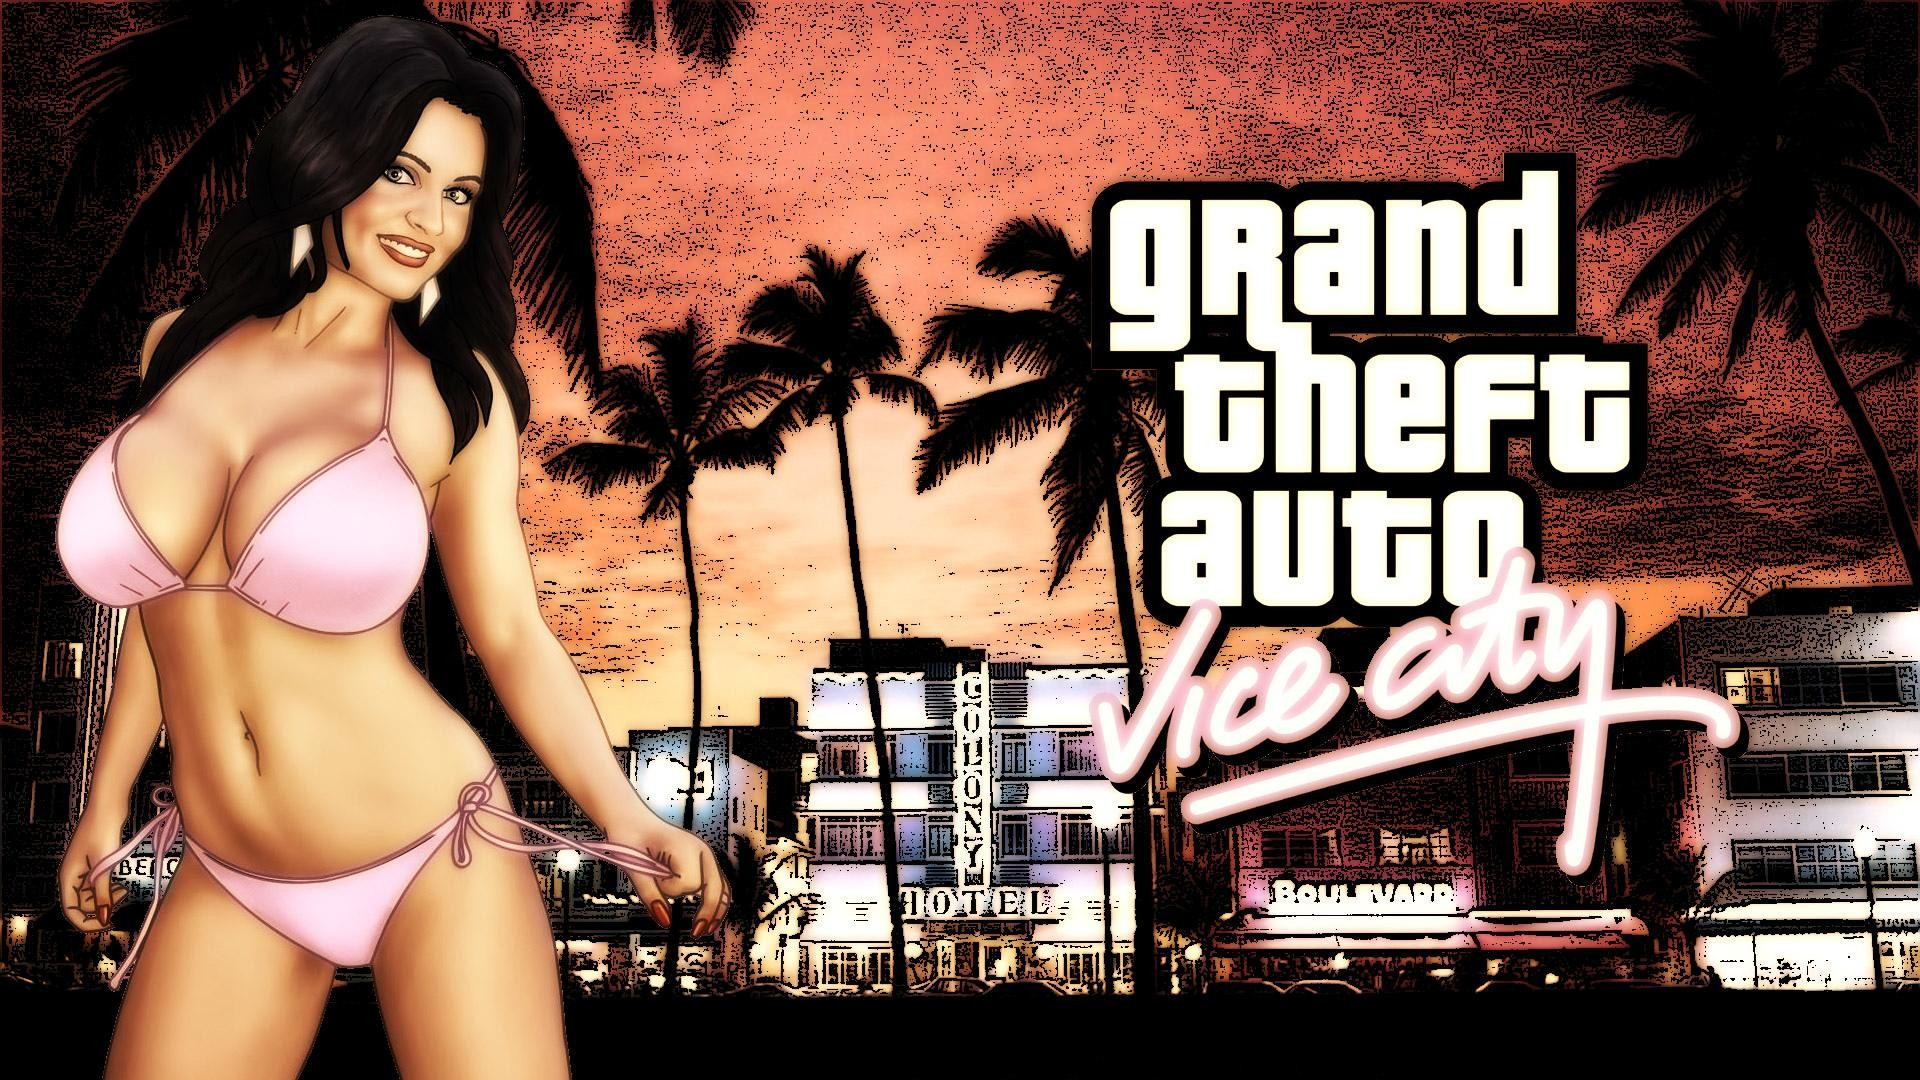 1920x1080 Grand Theft Auto Vice City high quality wallpapers